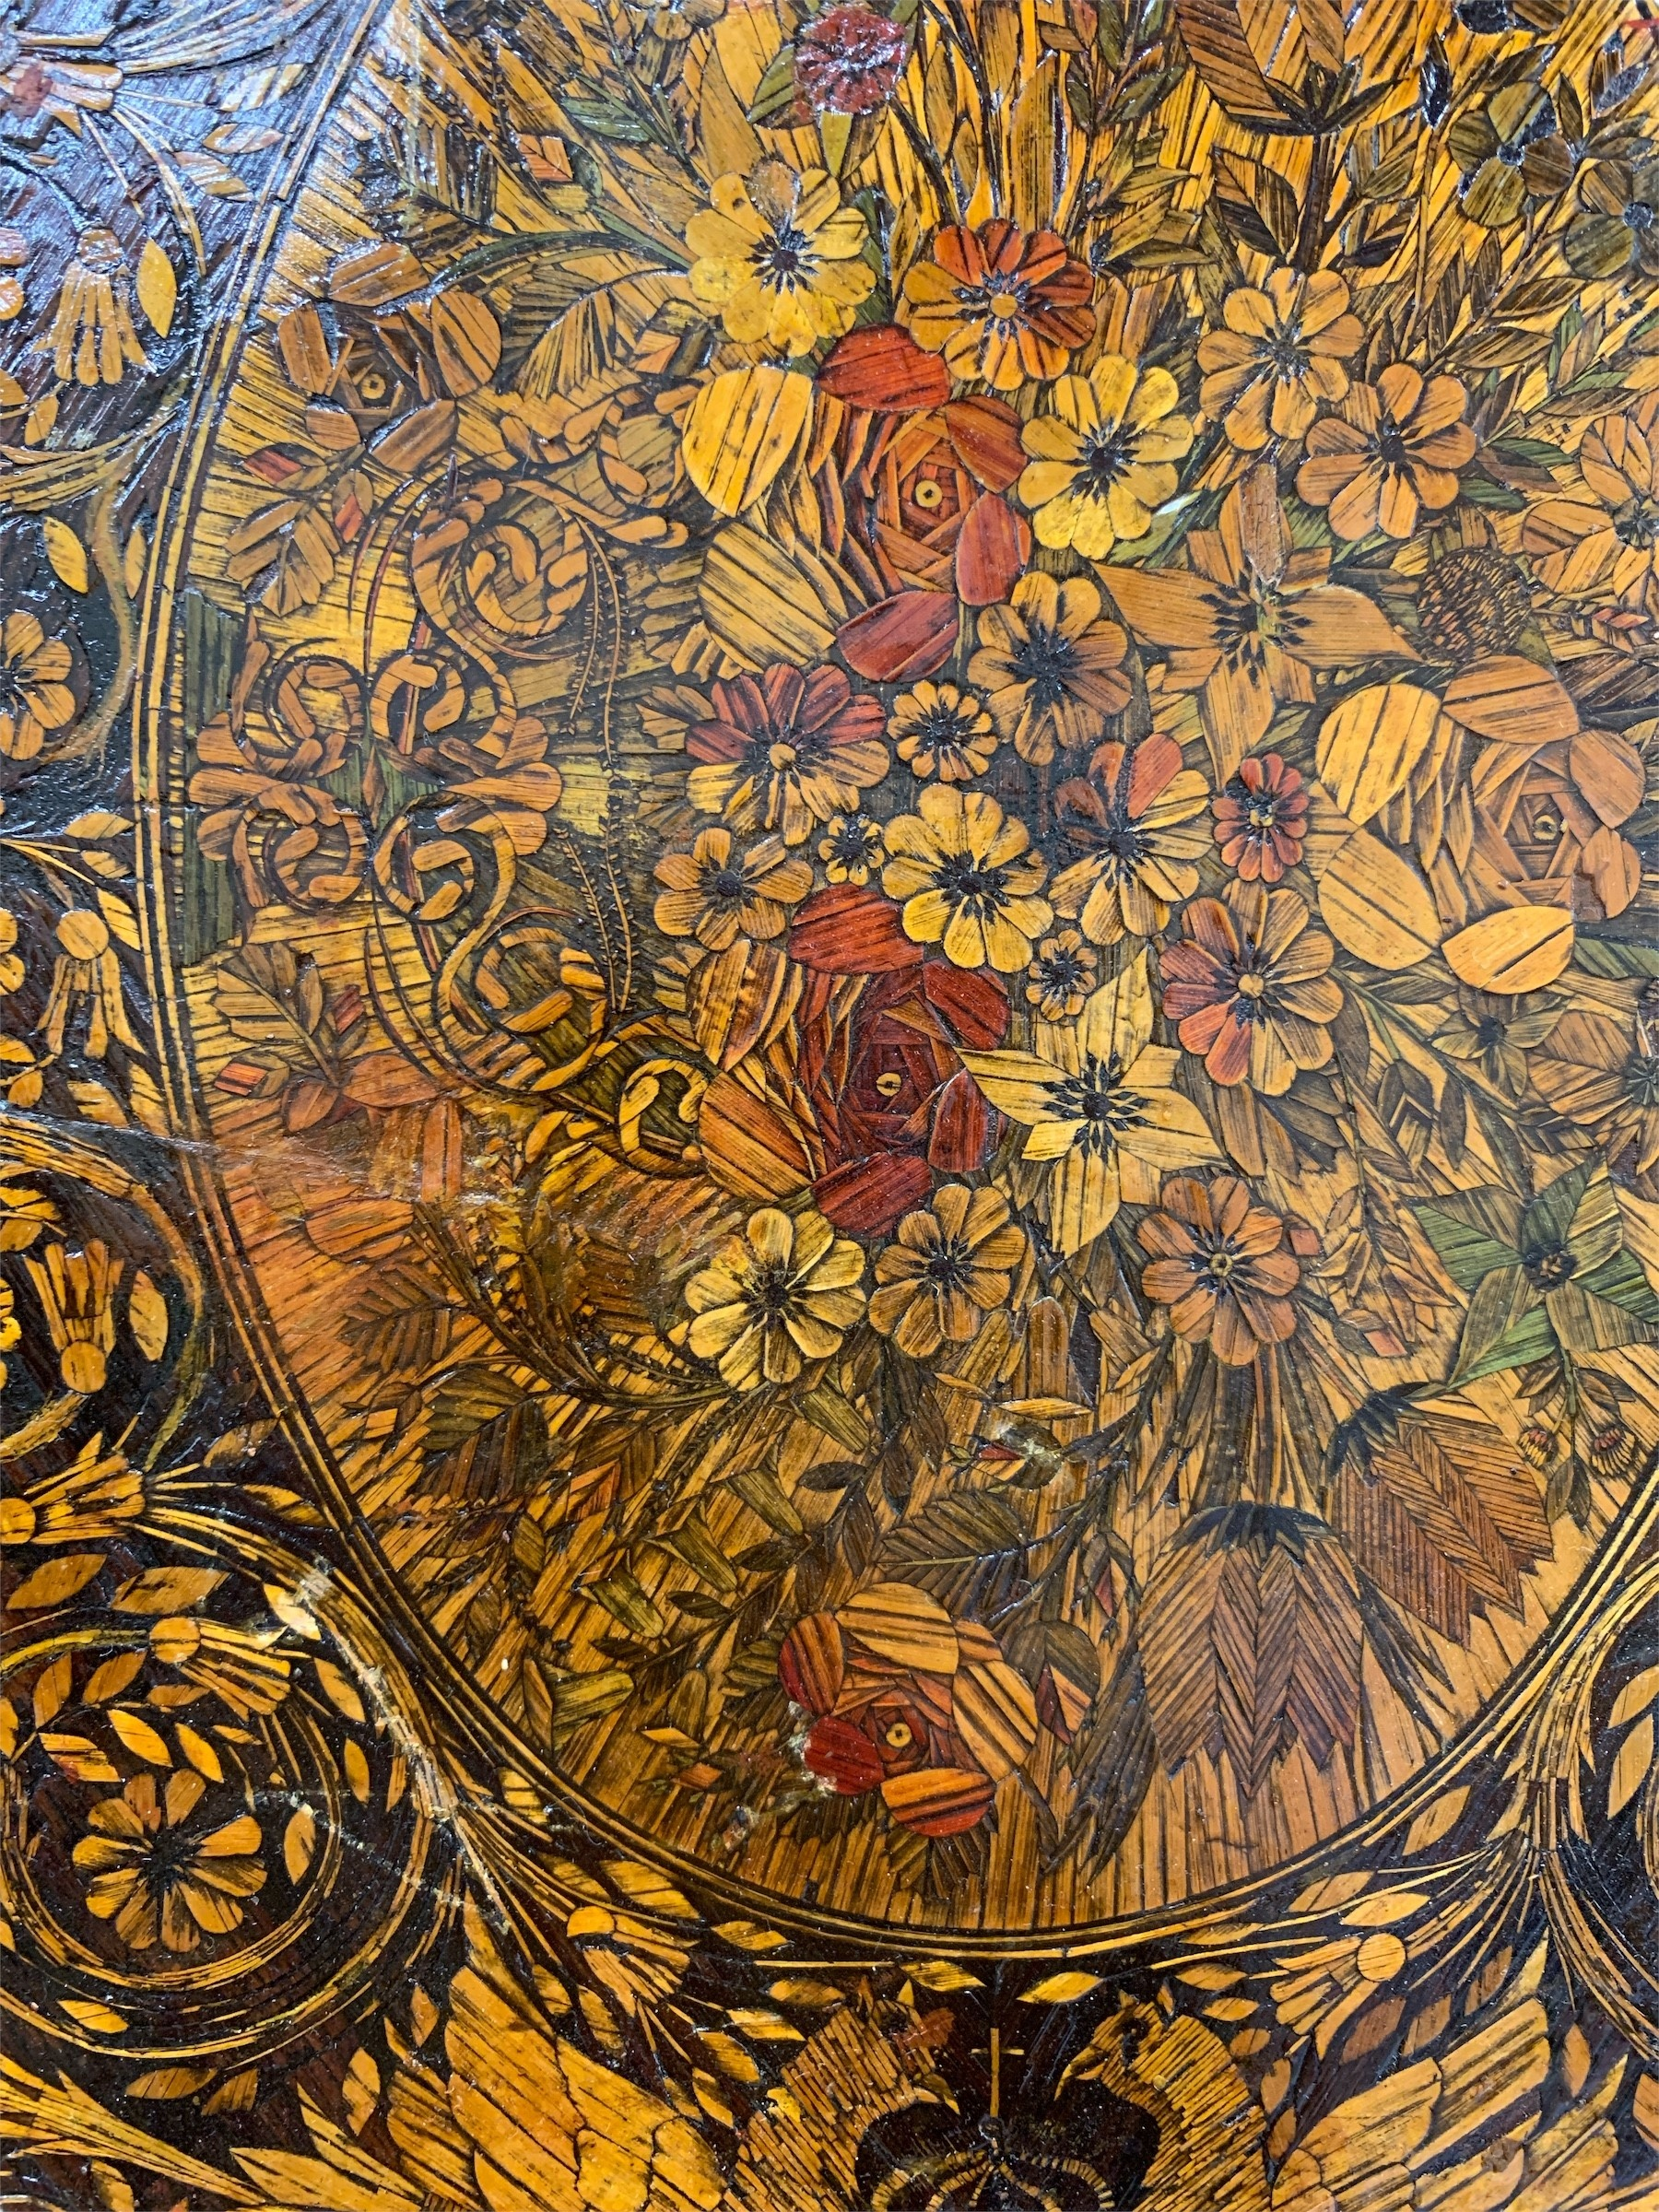 A 19TH CENTURY STRAW WORK PANEL Decorated with birds, flowers and foliage. (35cm x 45cm) - Image 2 of 3